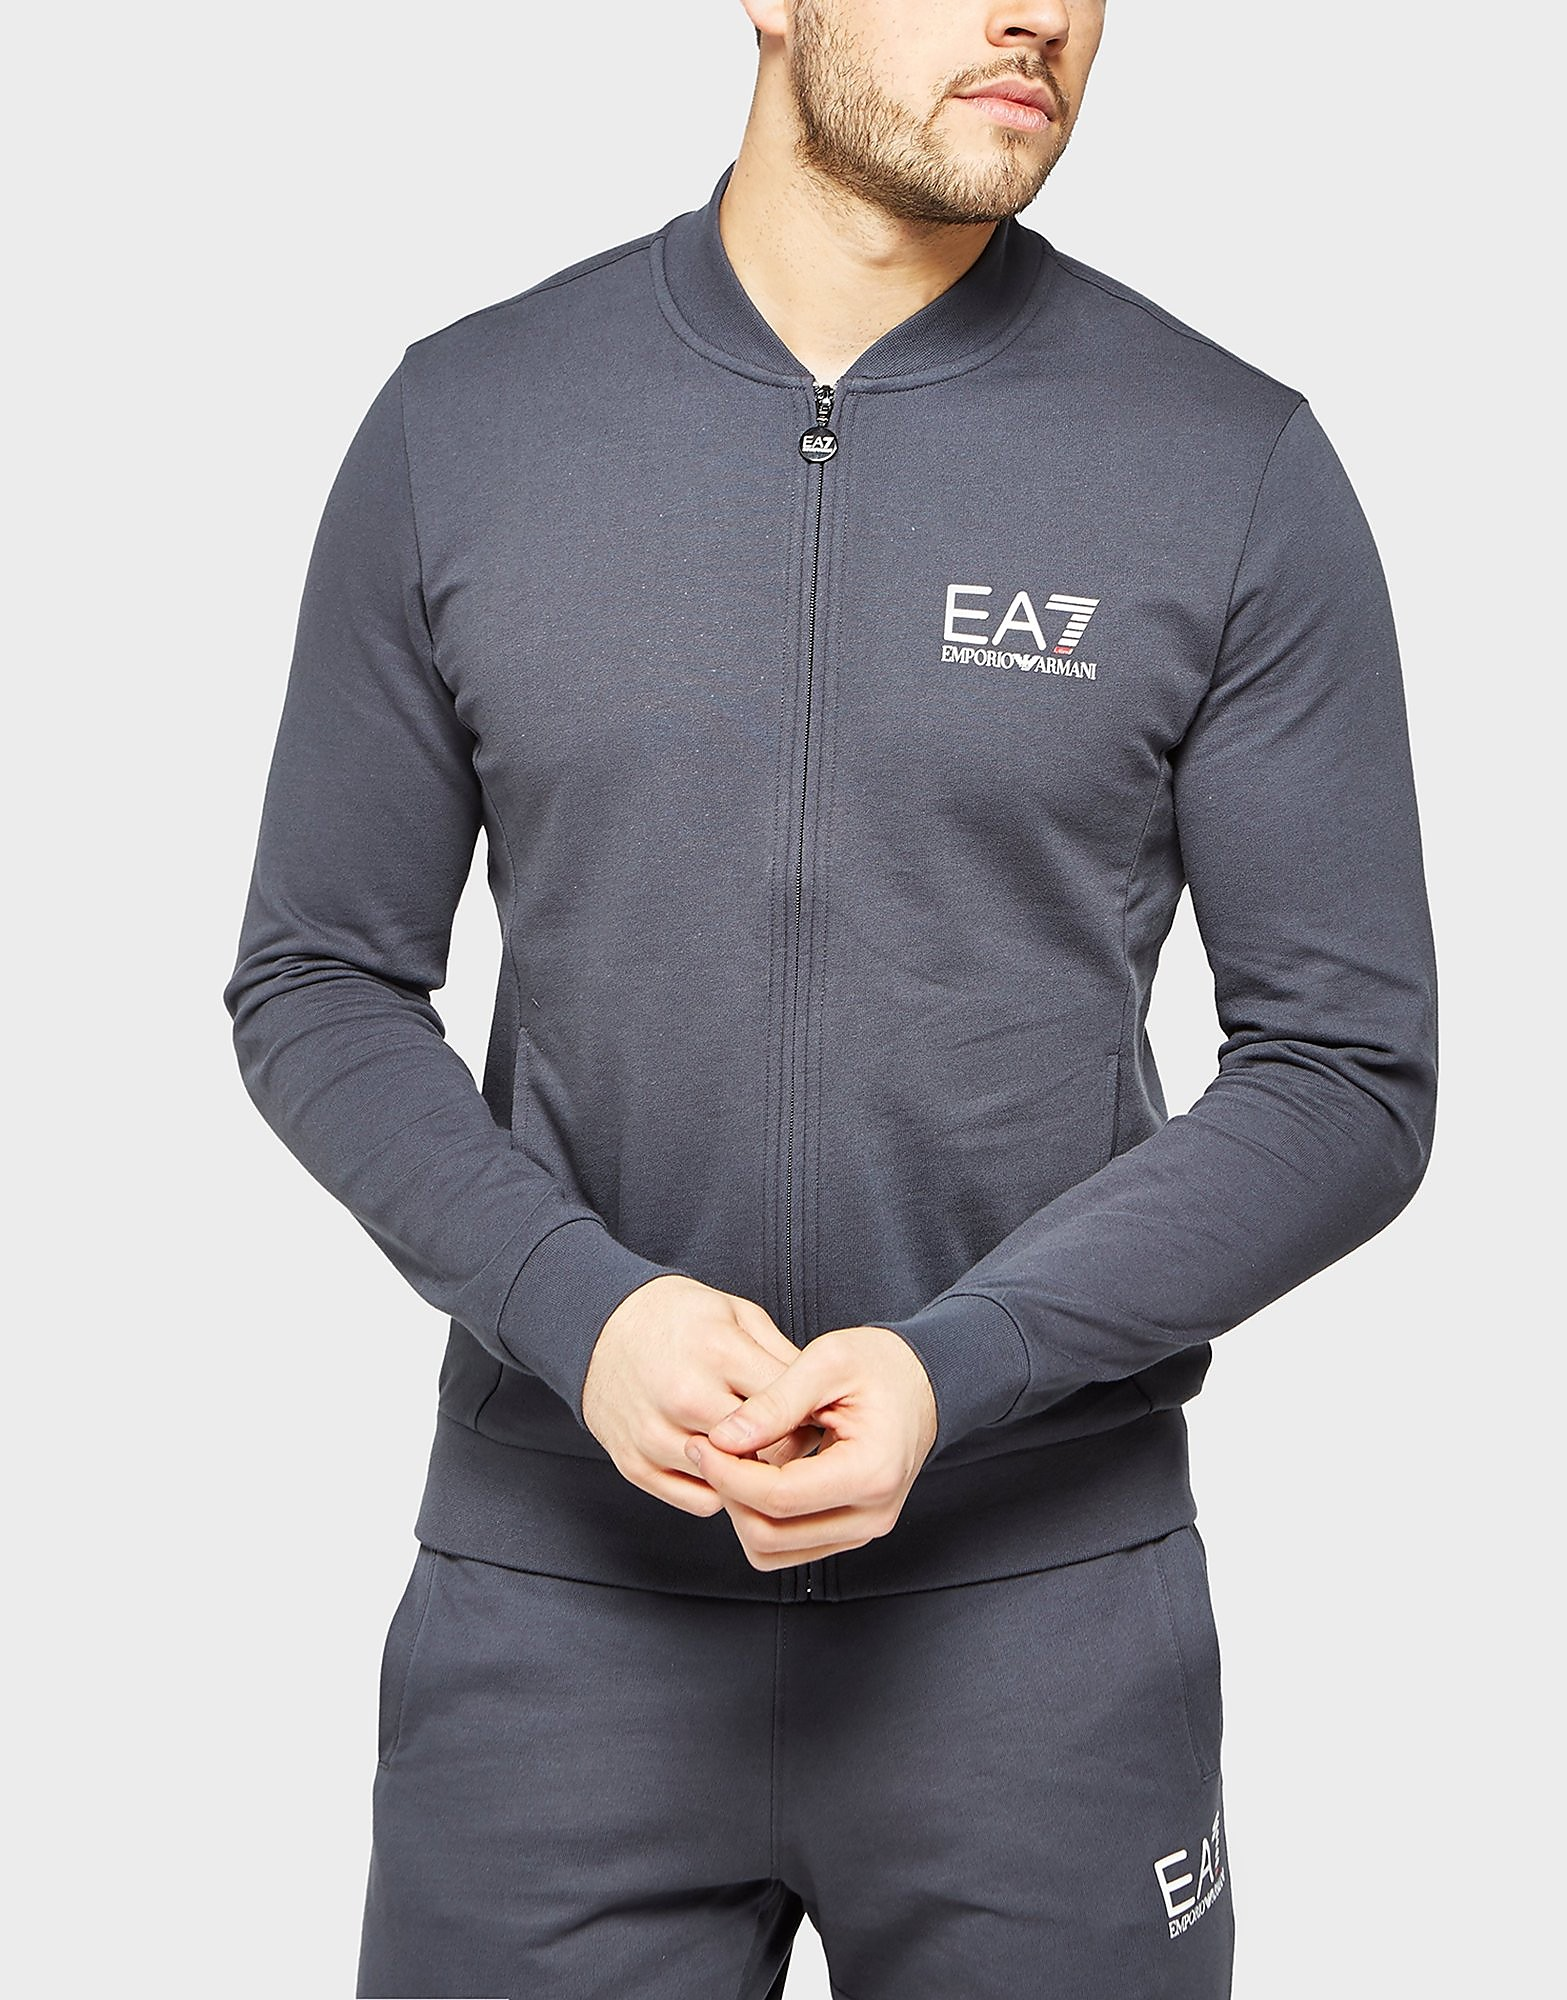 Emporio Armani EA7 Core Full Zip Bomber Track Top